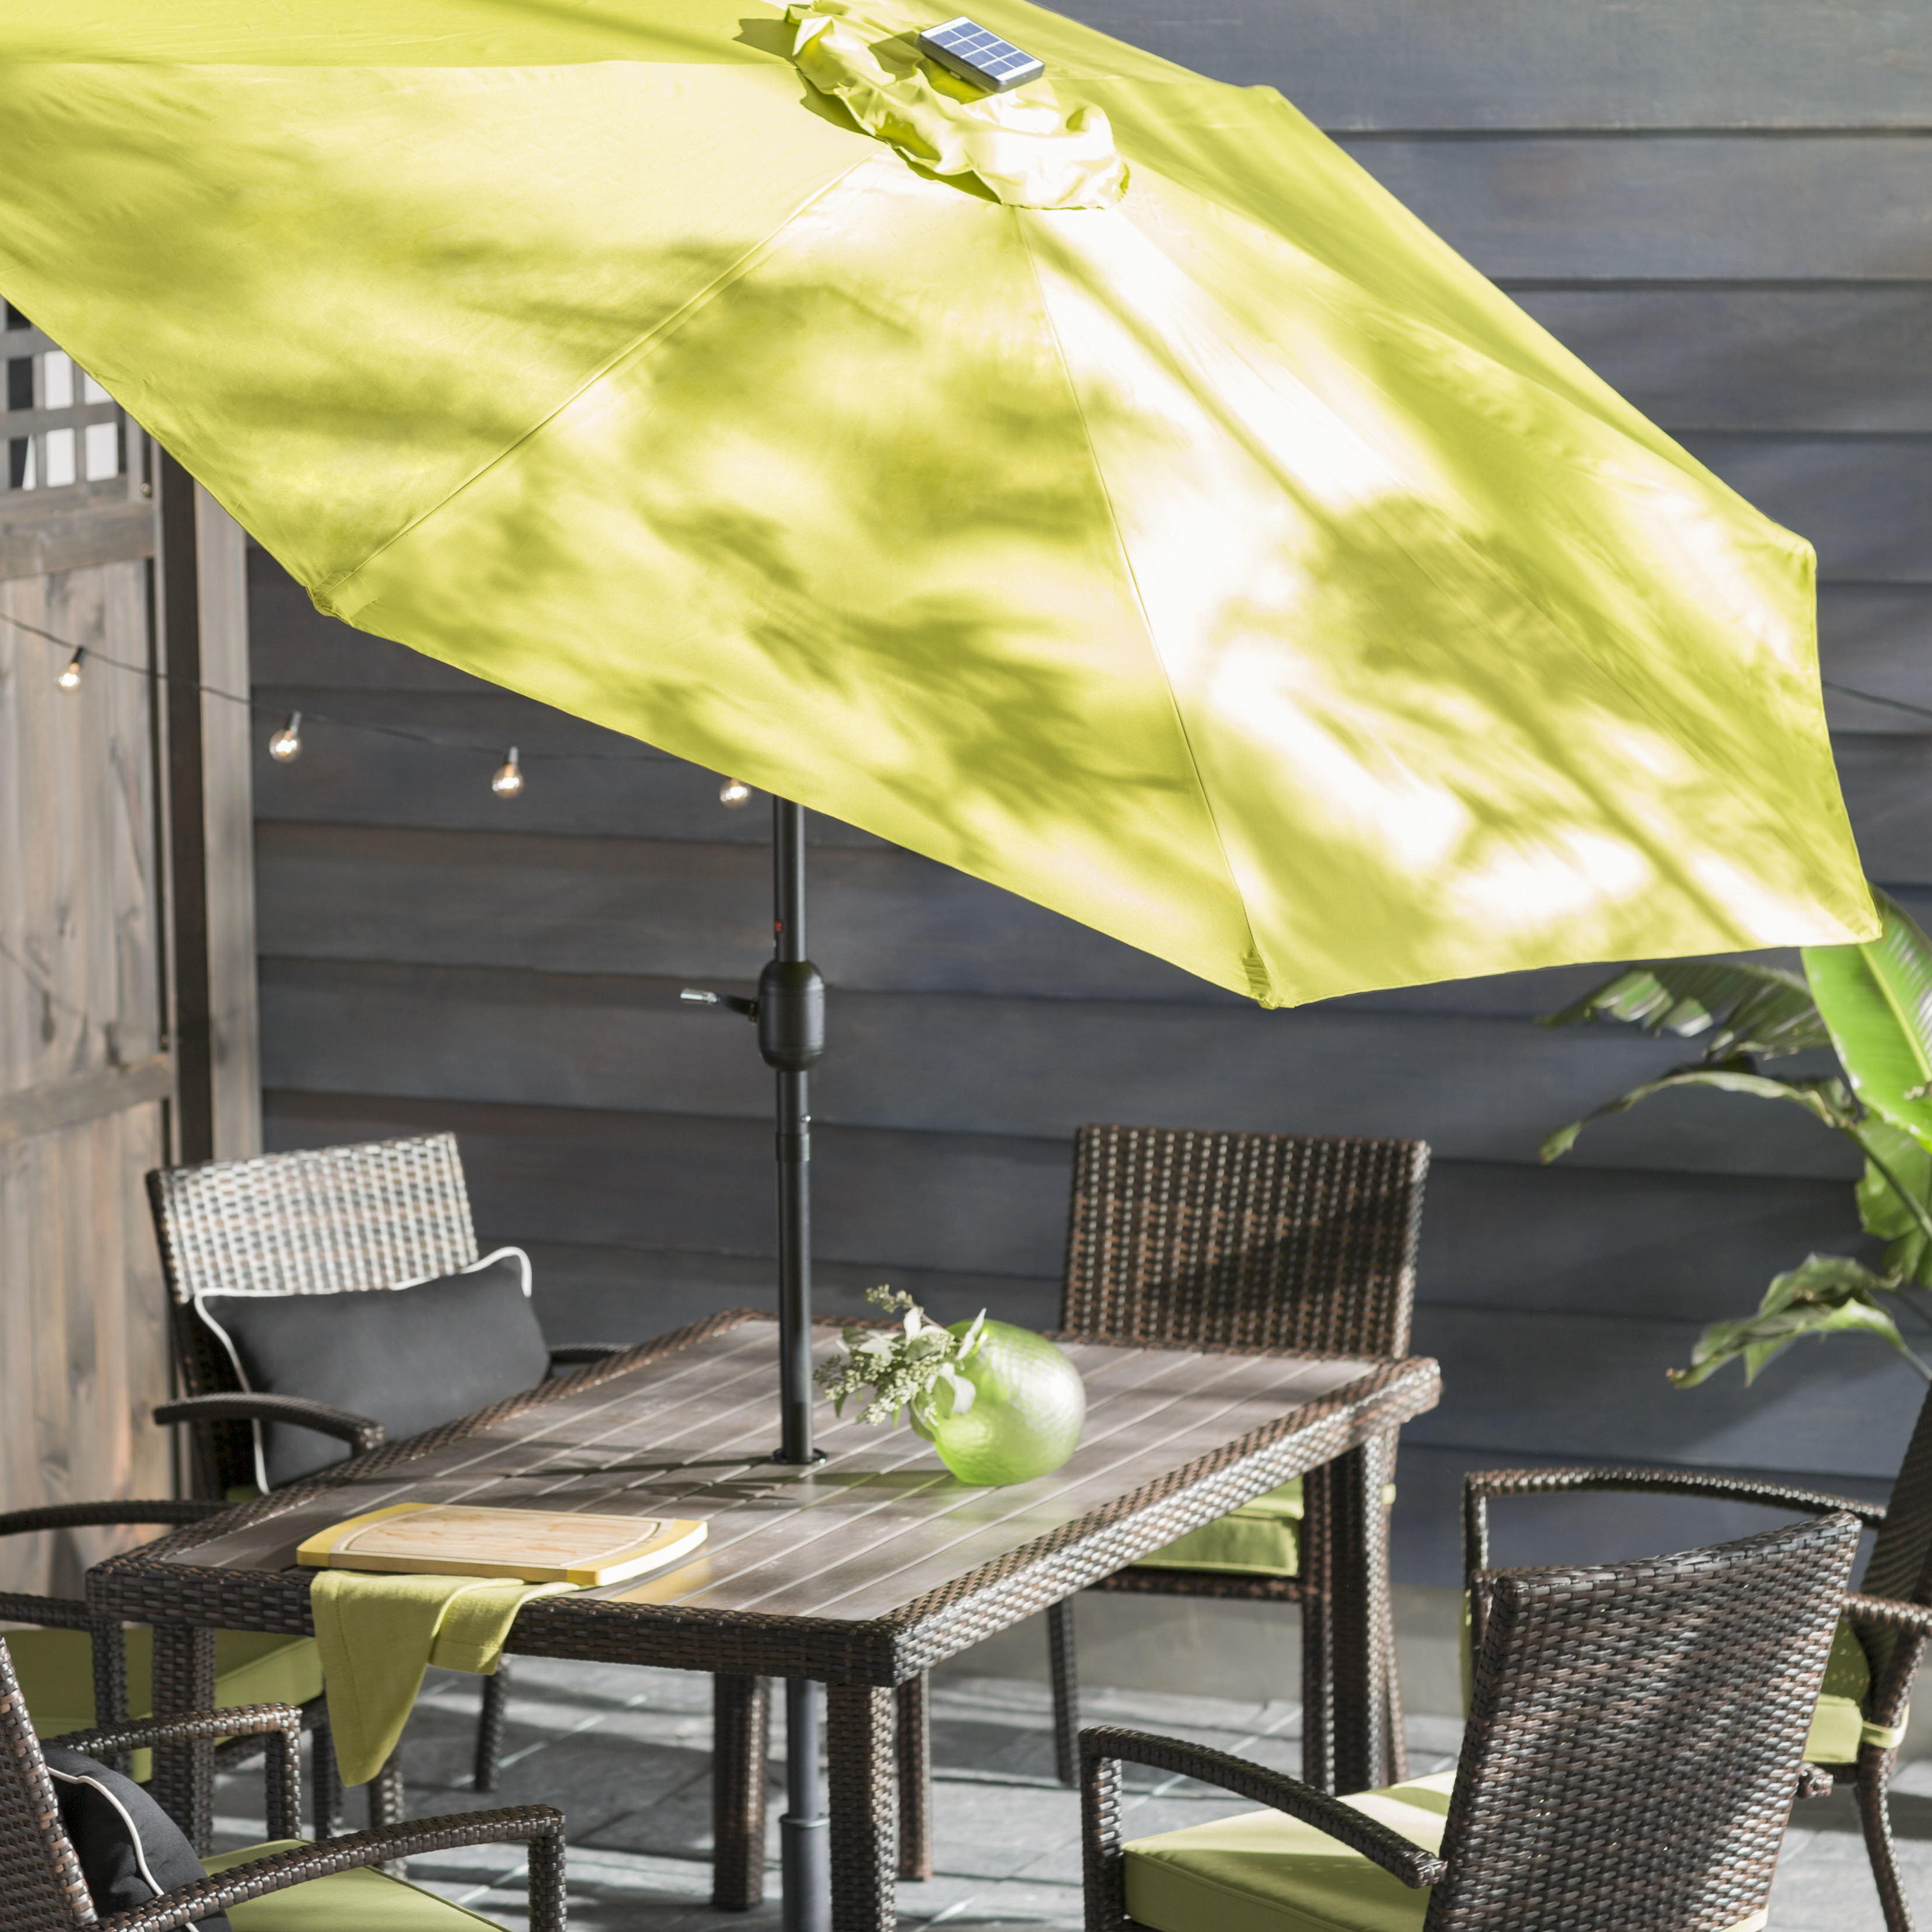 Woll 9' Lighted Market Umbrella With Regard To 2020 Woll Lighted Market Umbrellas (View 14 of 20)